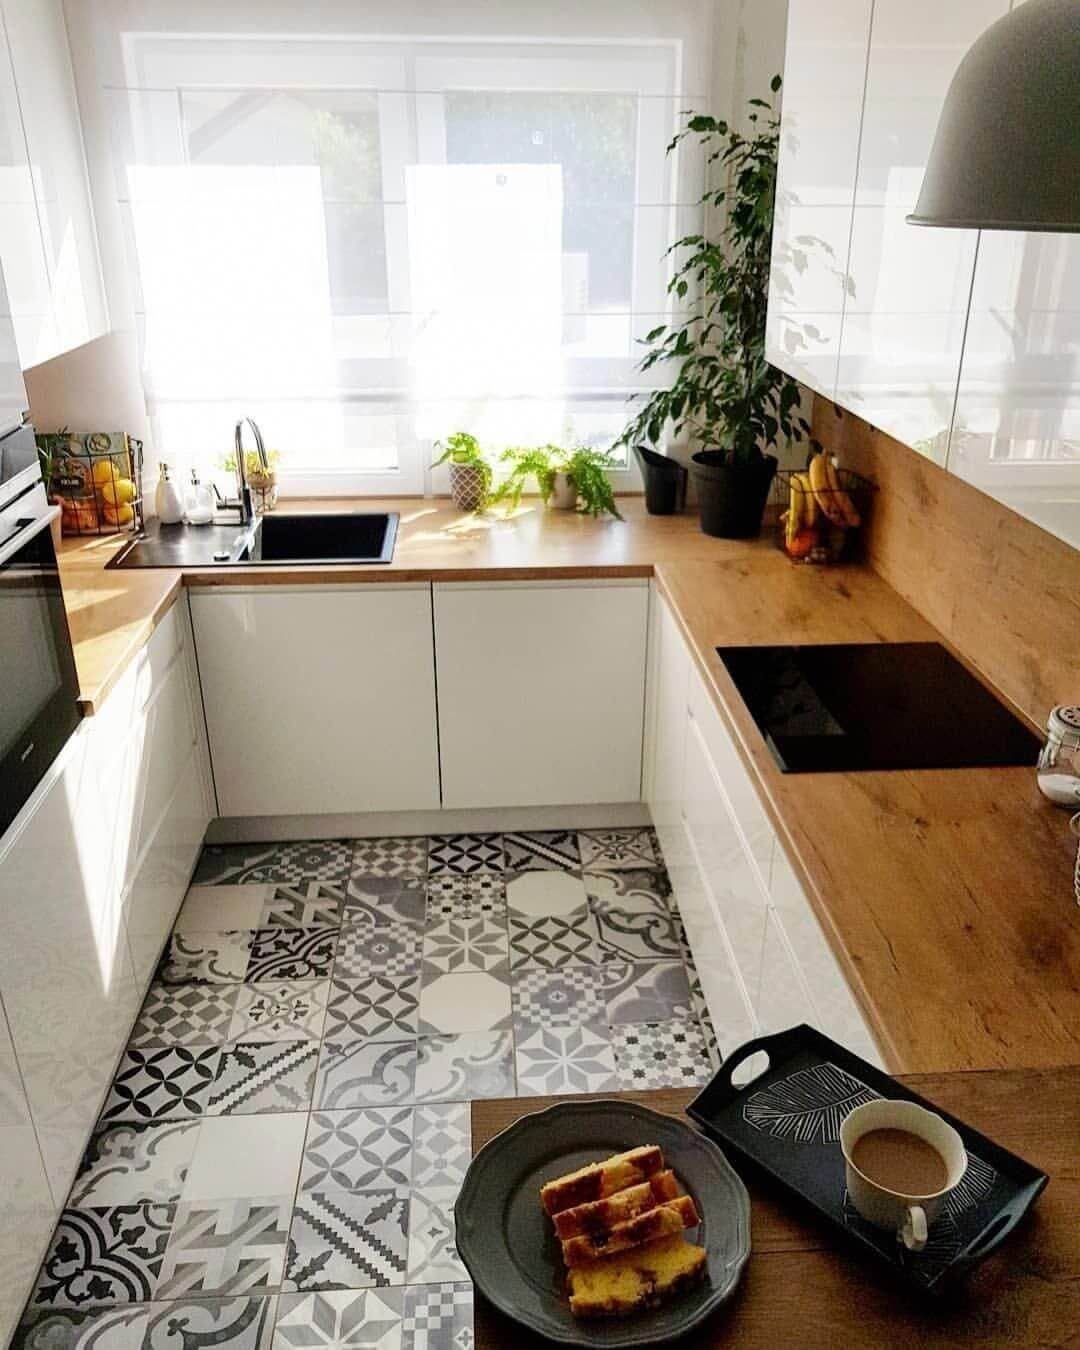 25 Eclectic Scandinavian Kitchen Designs (Let's Bring The Charm!) - 46Eb9730A8Dd727E23F0C82A46E86F6B